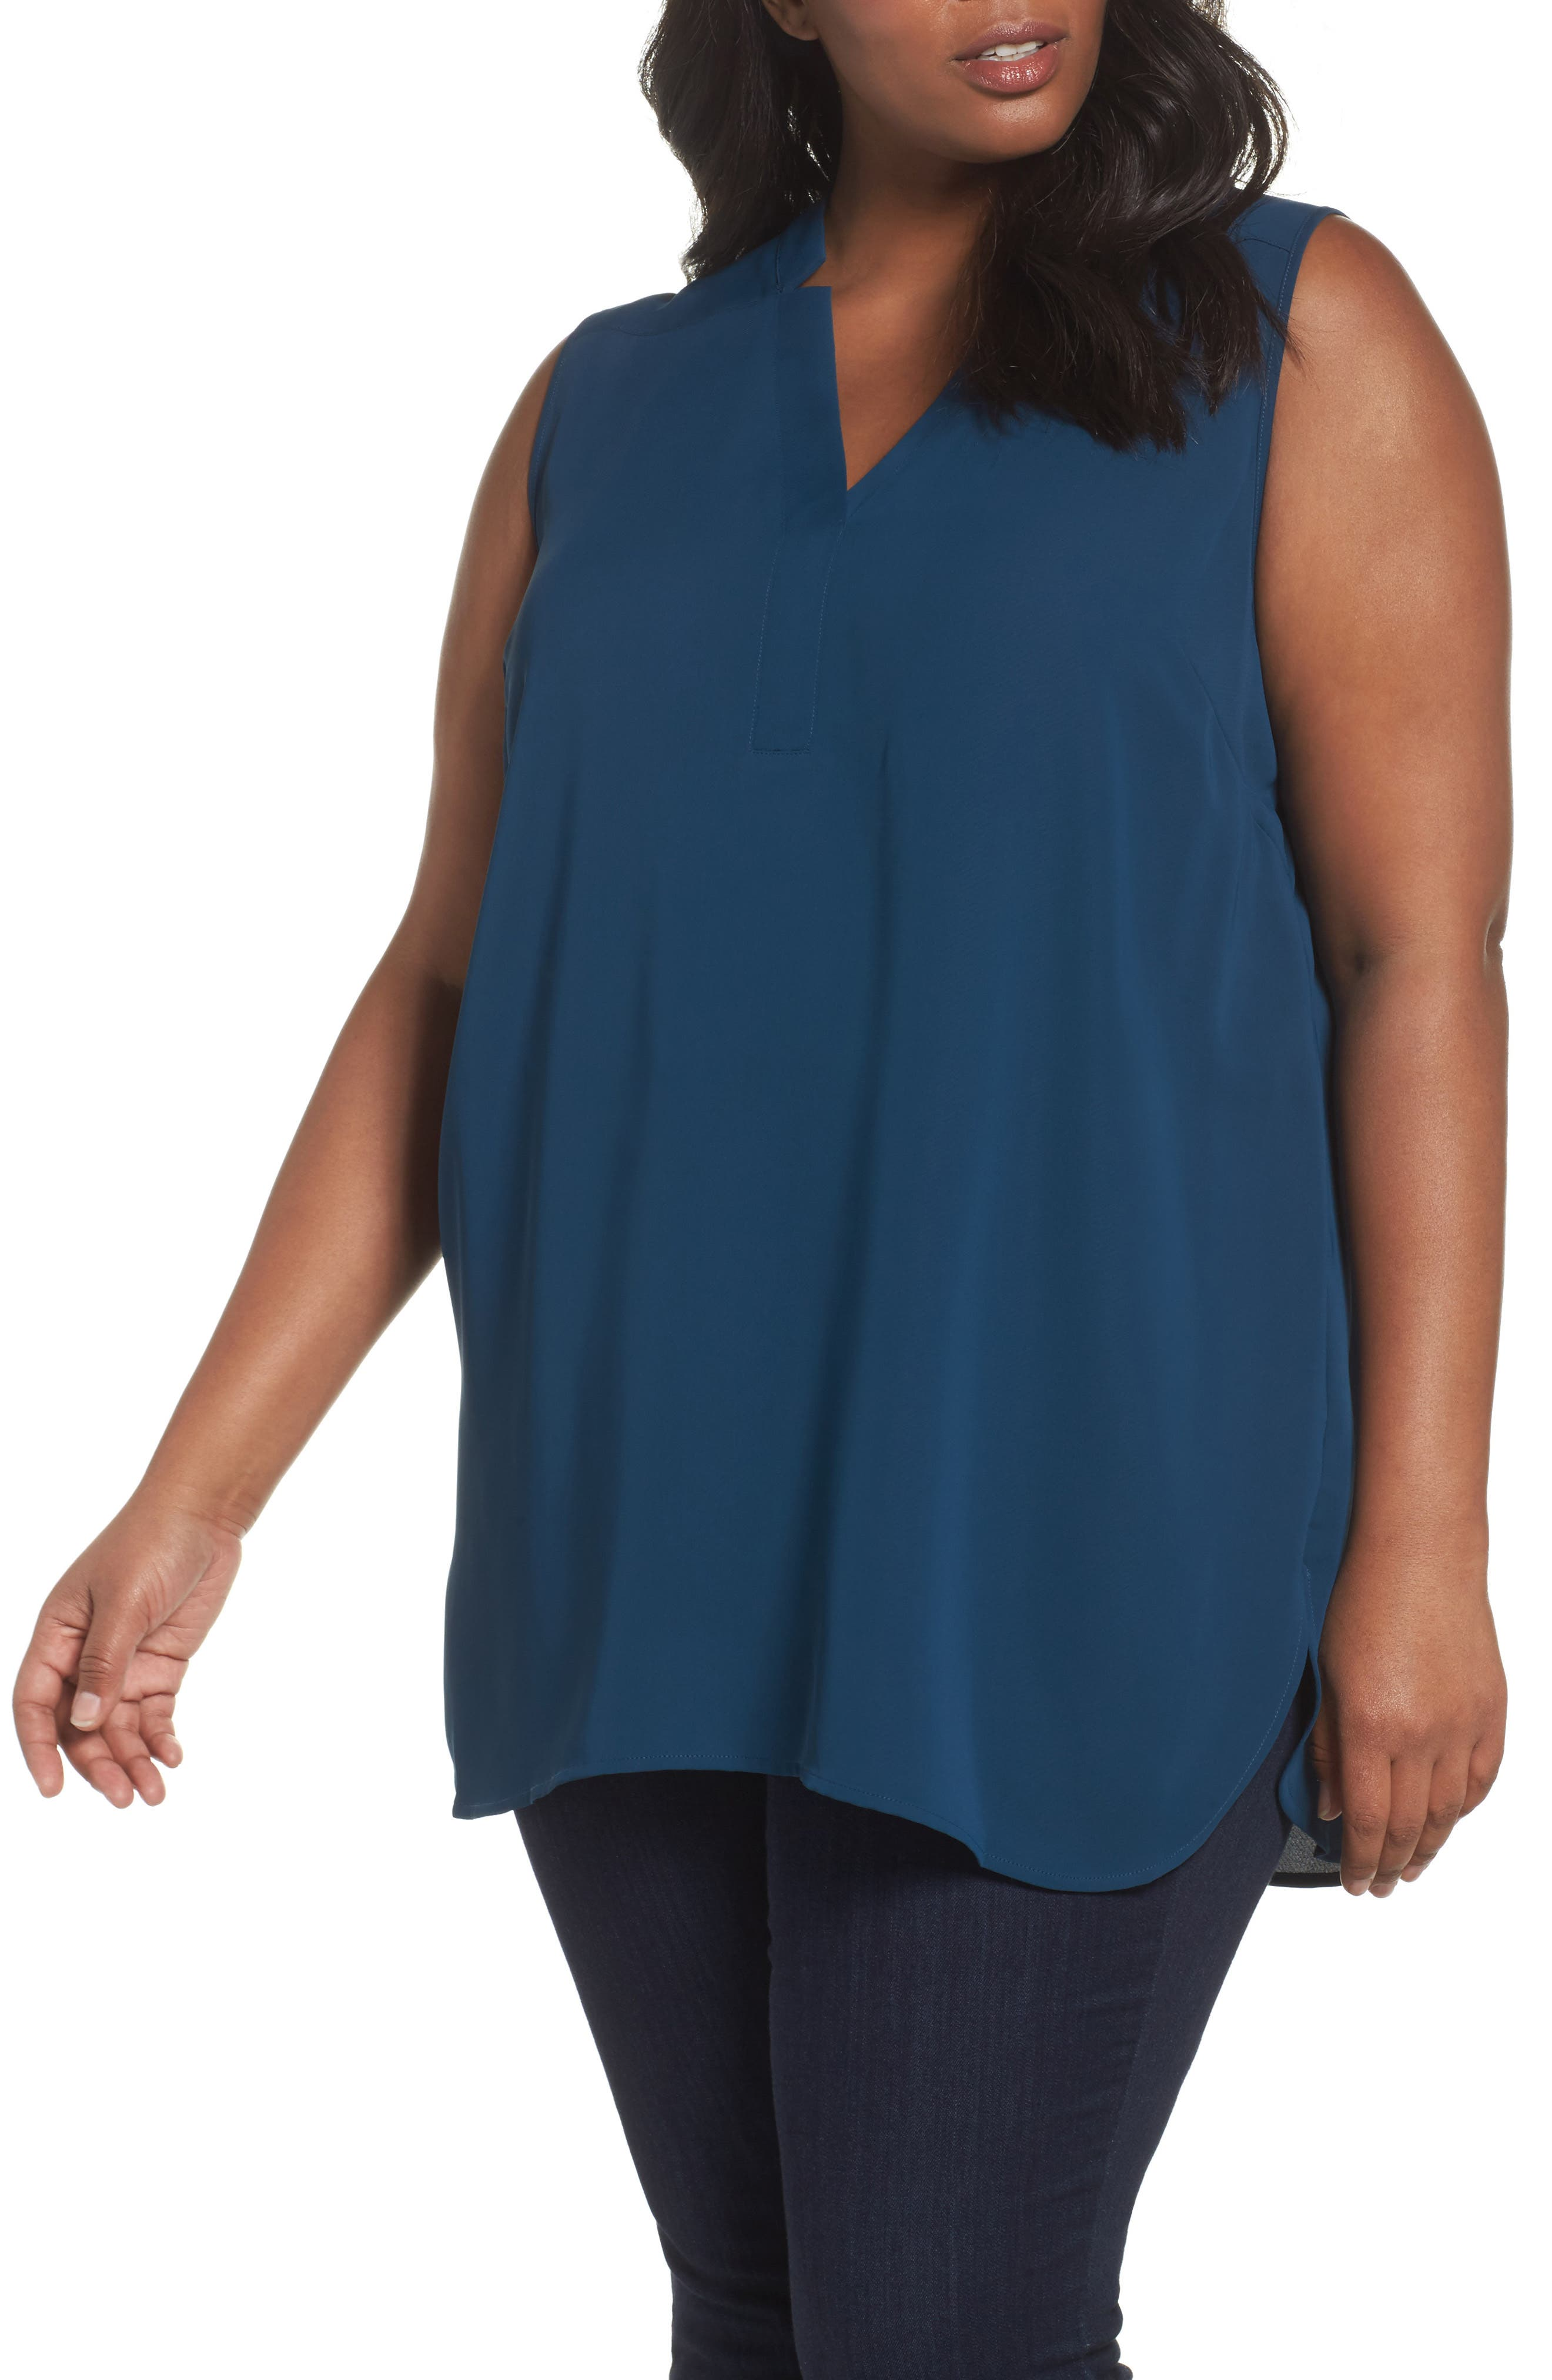 Main Image - NIC+ZOE Forget Me Not Top (Plus Size)